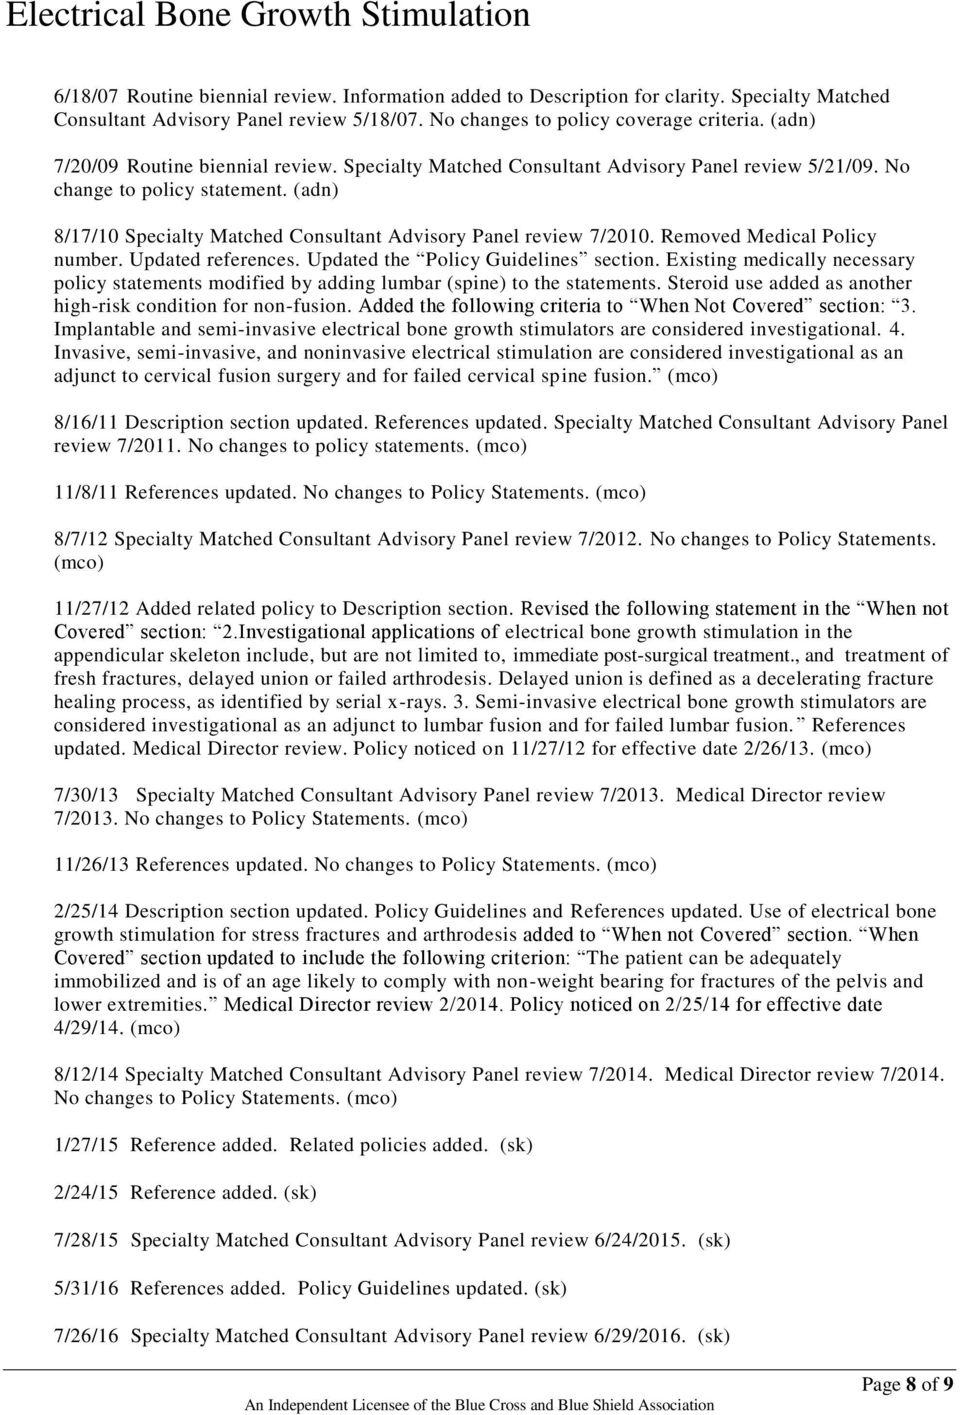 (adn) 8/17/10 Specialty Matched Consultant Advisory Panel review 7/2010. Removed Medical Policy number. Updated references. Updated the Policy Guidelines section.